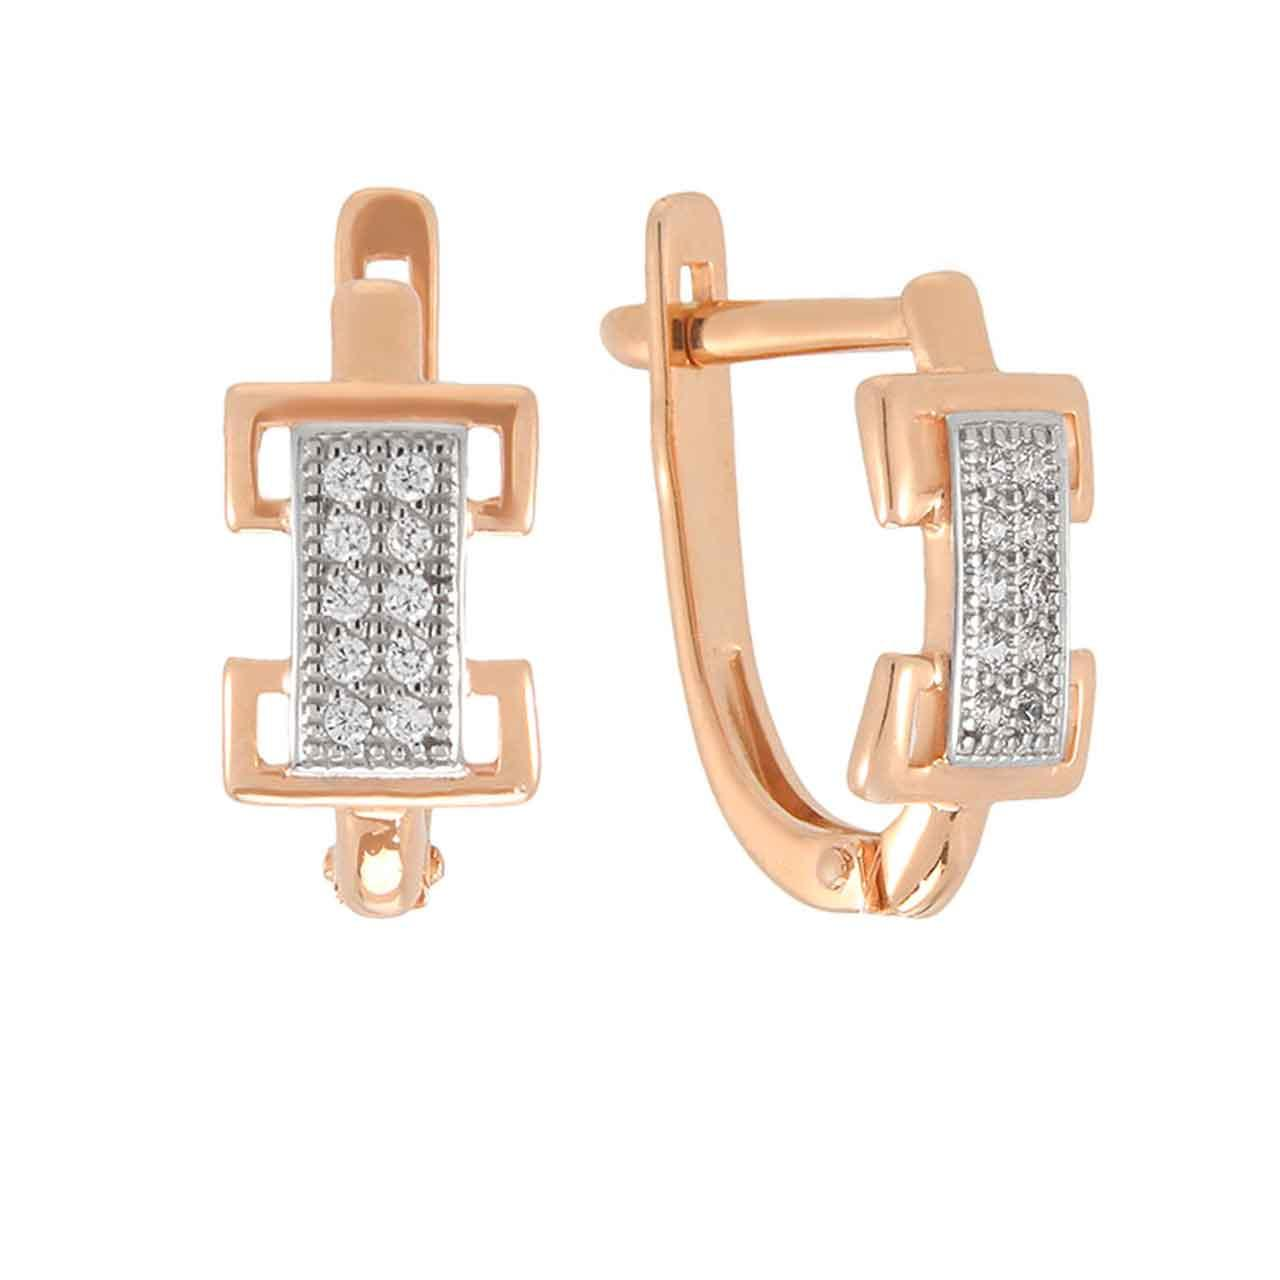 Stylized 'Belt Buckle' Gold Earrings